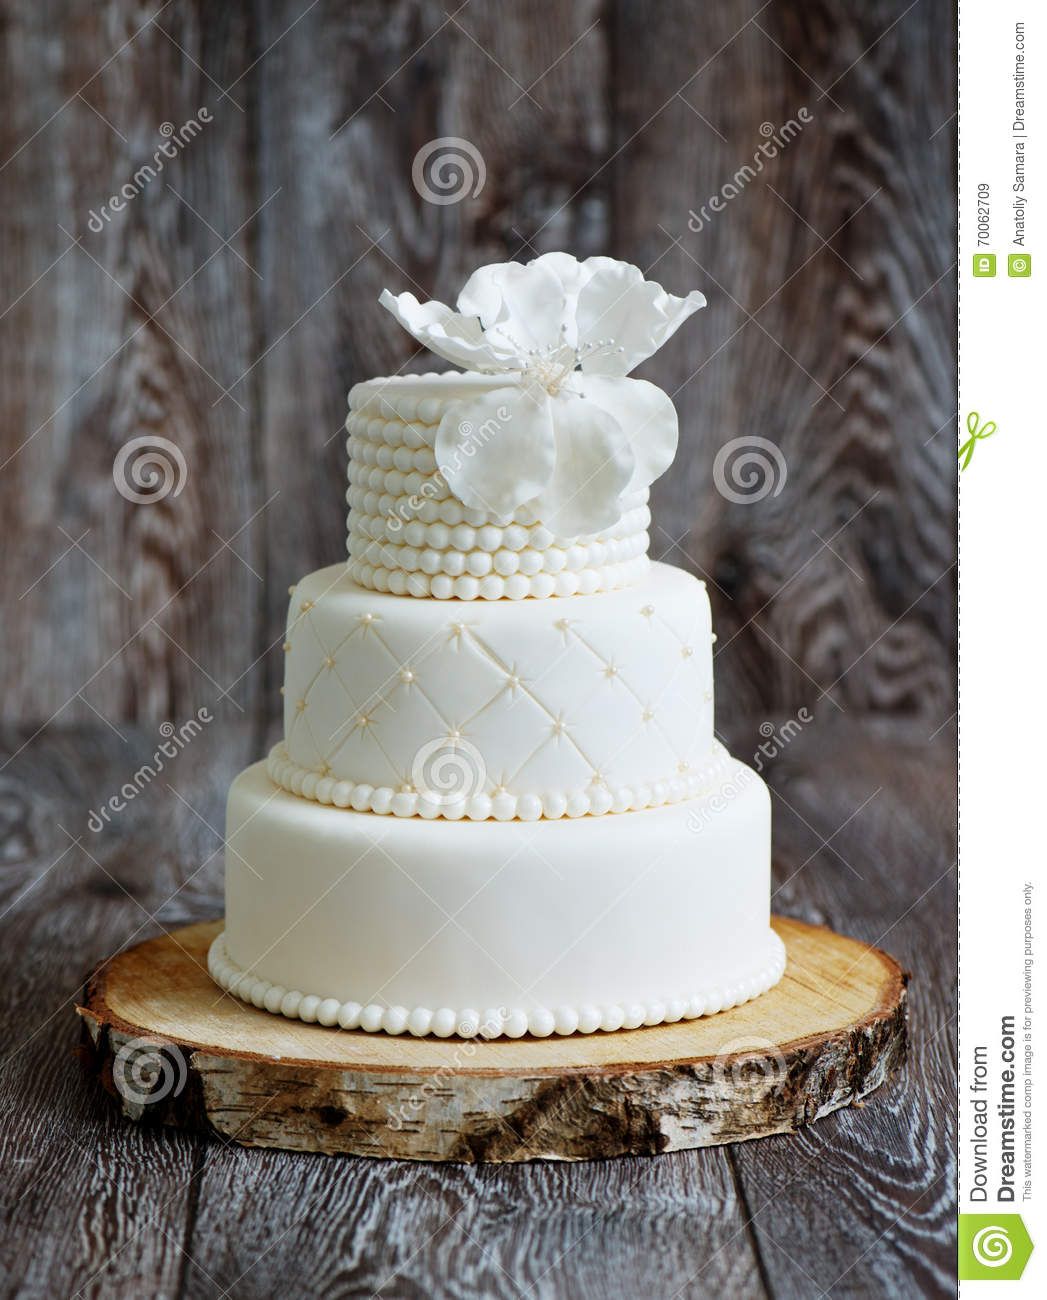 Wedding Cake Covered With White Fondant Stock Image - Image of beads ...